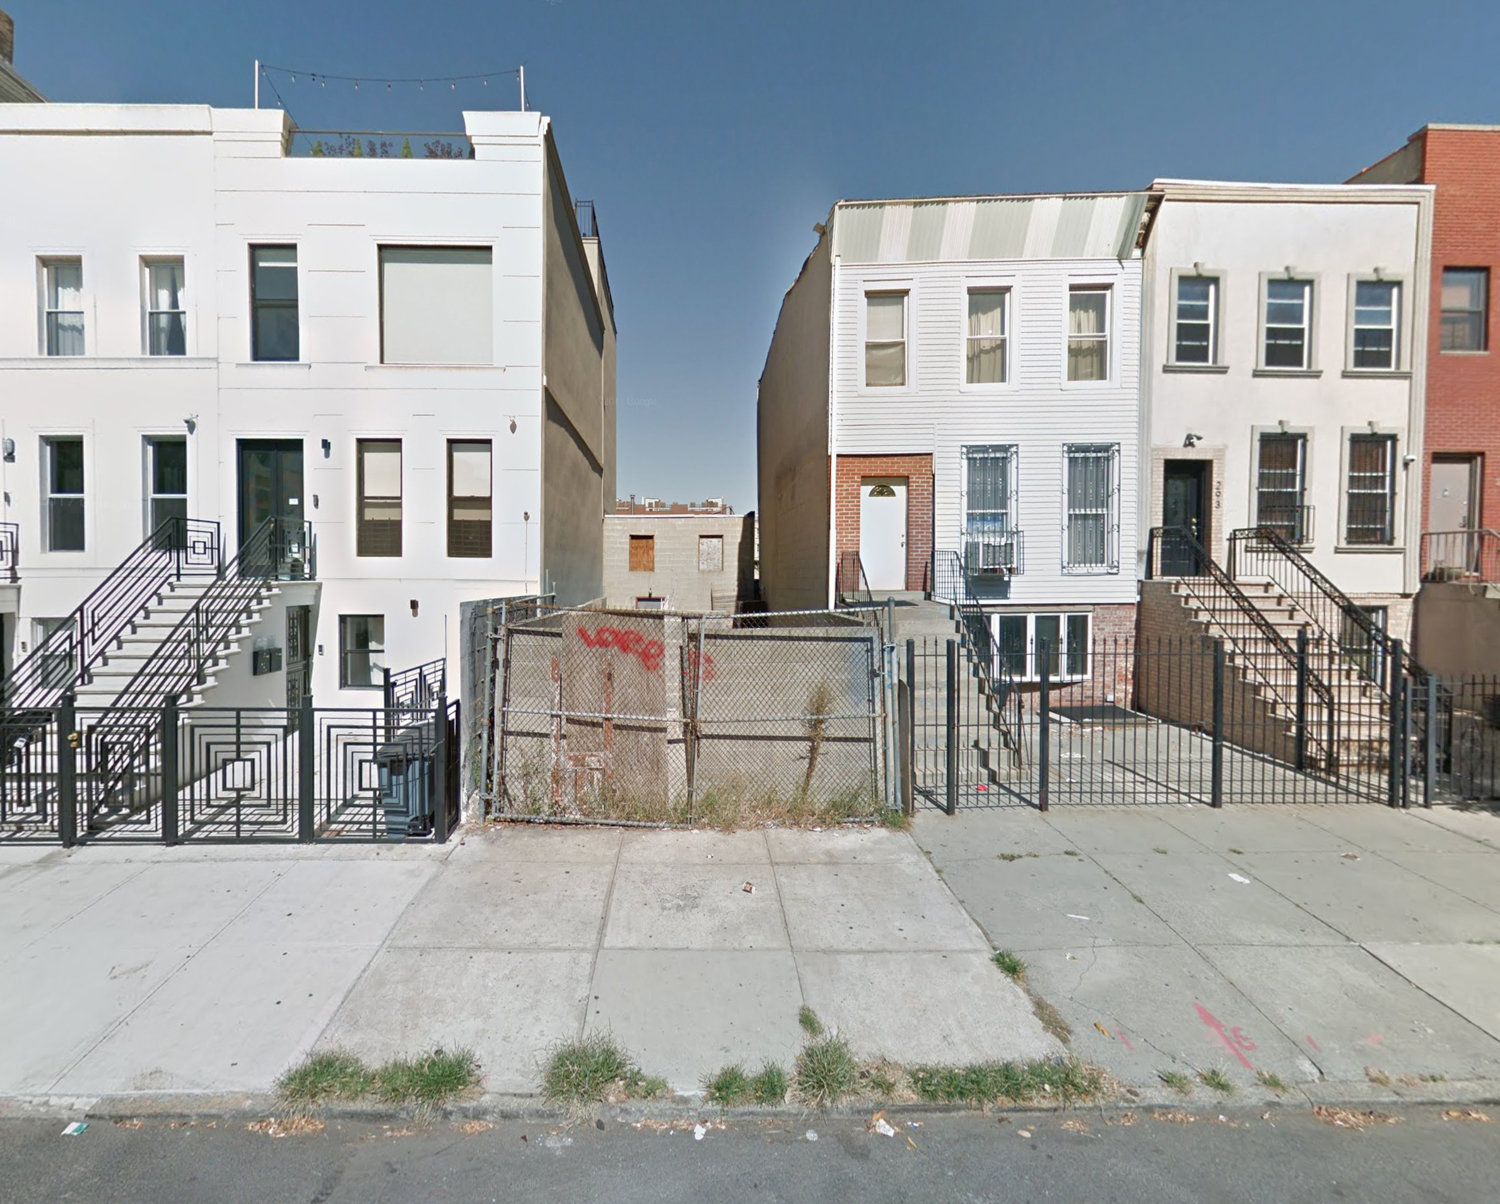 289 Kosciuszko Street, via Google Maps